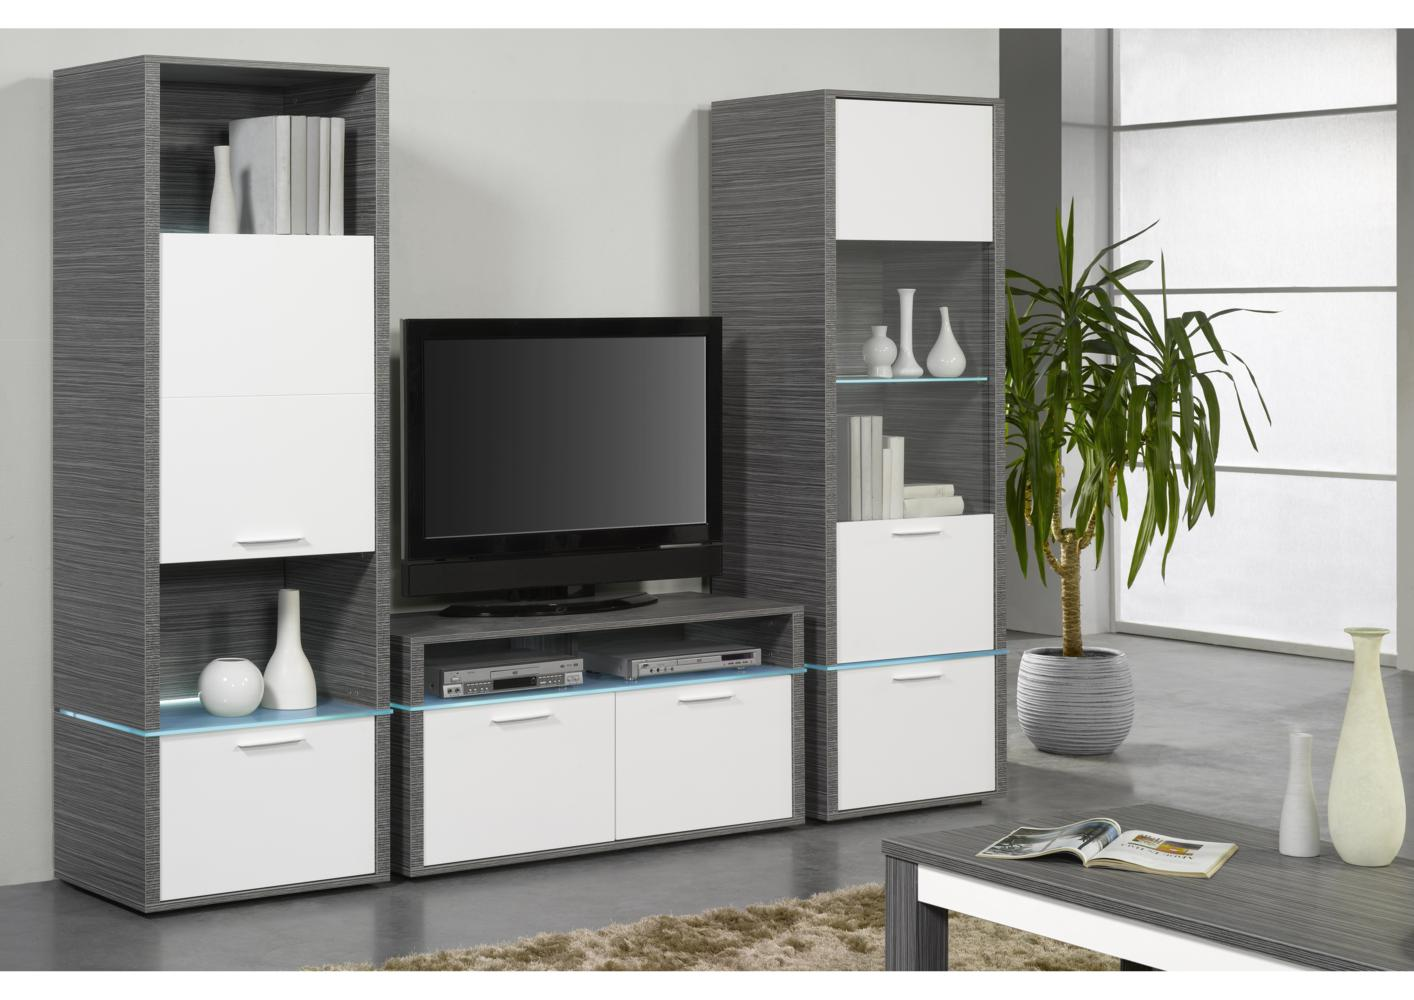 meuble tv avec colonne mobilier design d coration d 39 int rieur. Black Bedroom Furniture Sets. Home Design Ideas